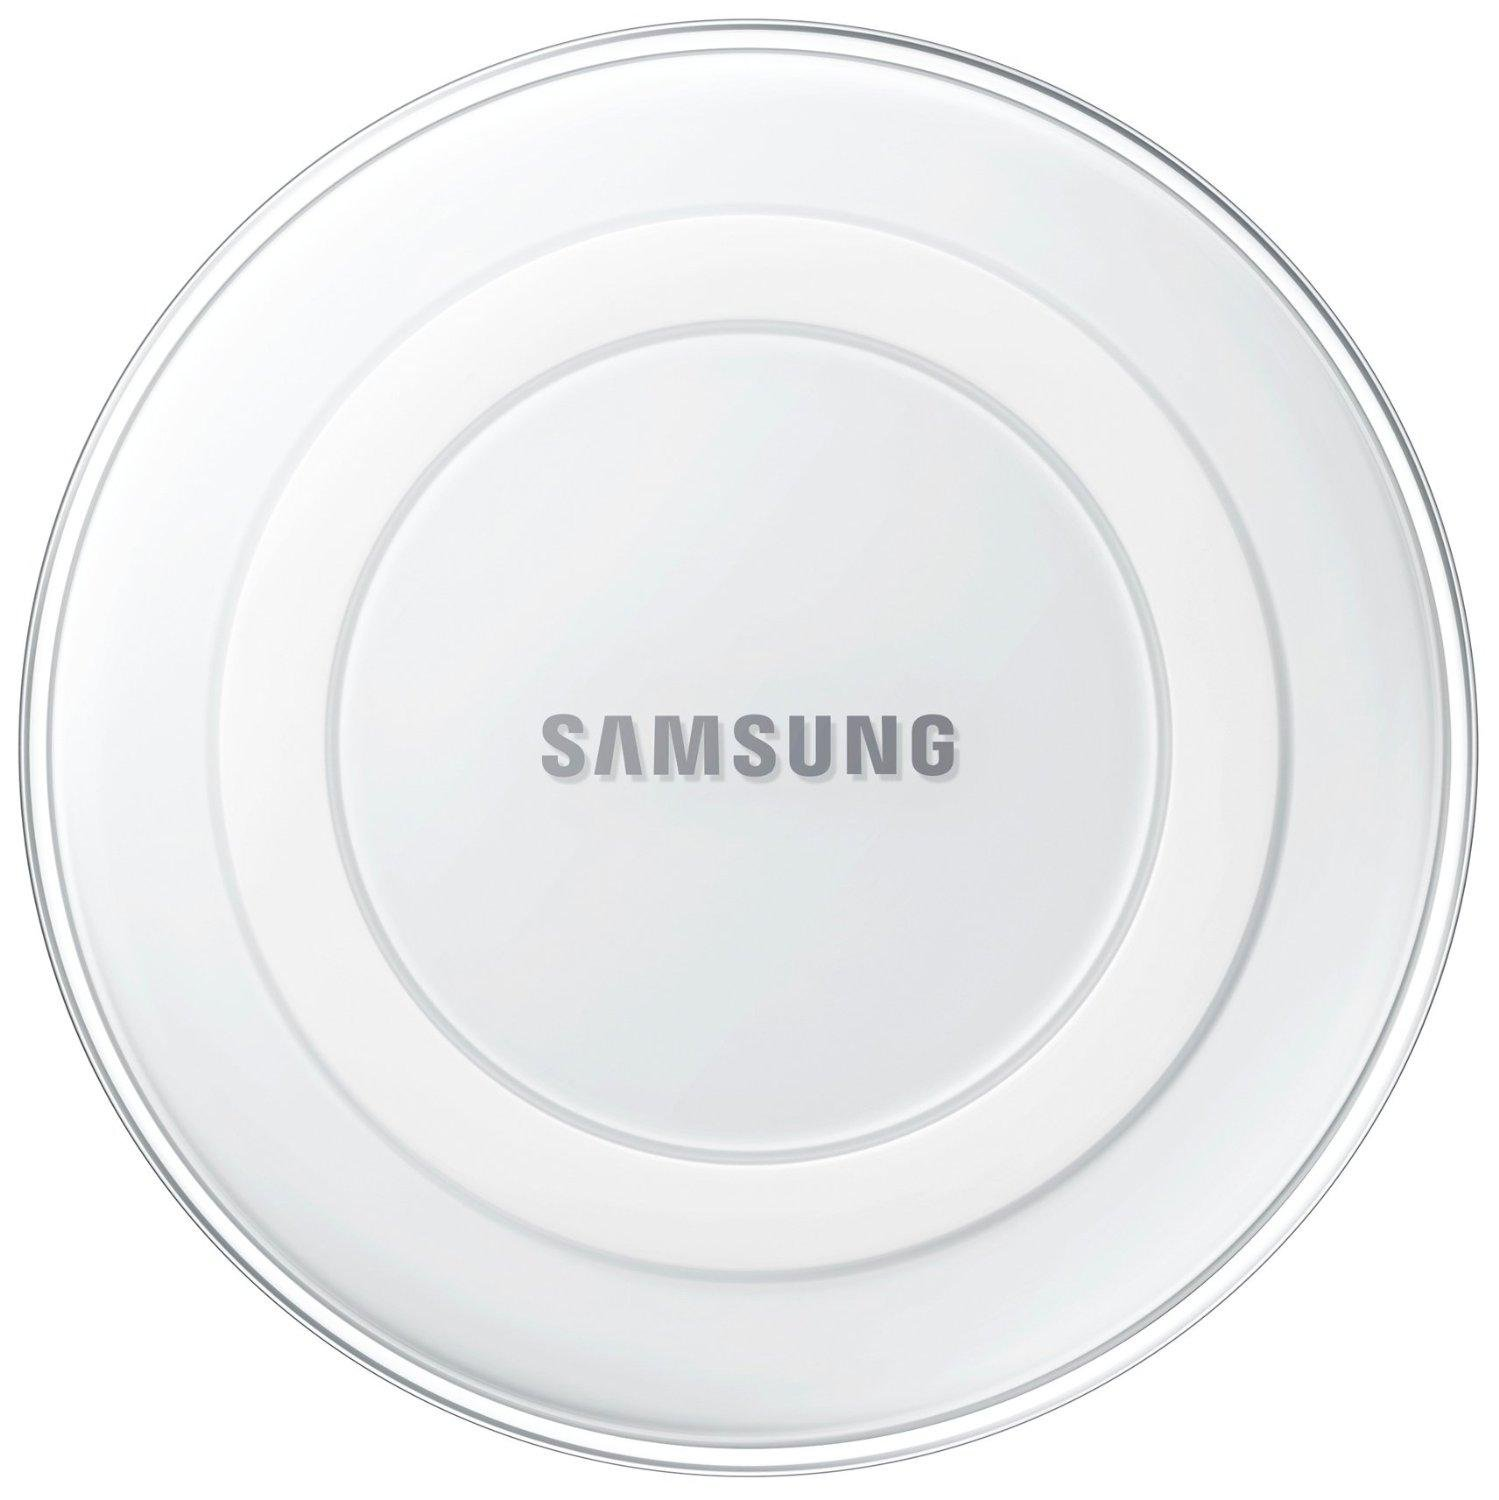 Samsung Qi Certified Wireless Charging Pad with 2A Wall Charger -Supports wireless charging on Qi compatible smartphones including the Samsung Galaxy S8, S8+, Note 8, Apple iPhone 8, iPhone 8 Plus, and iPhone X (US Version) - White Pearl by Samsung